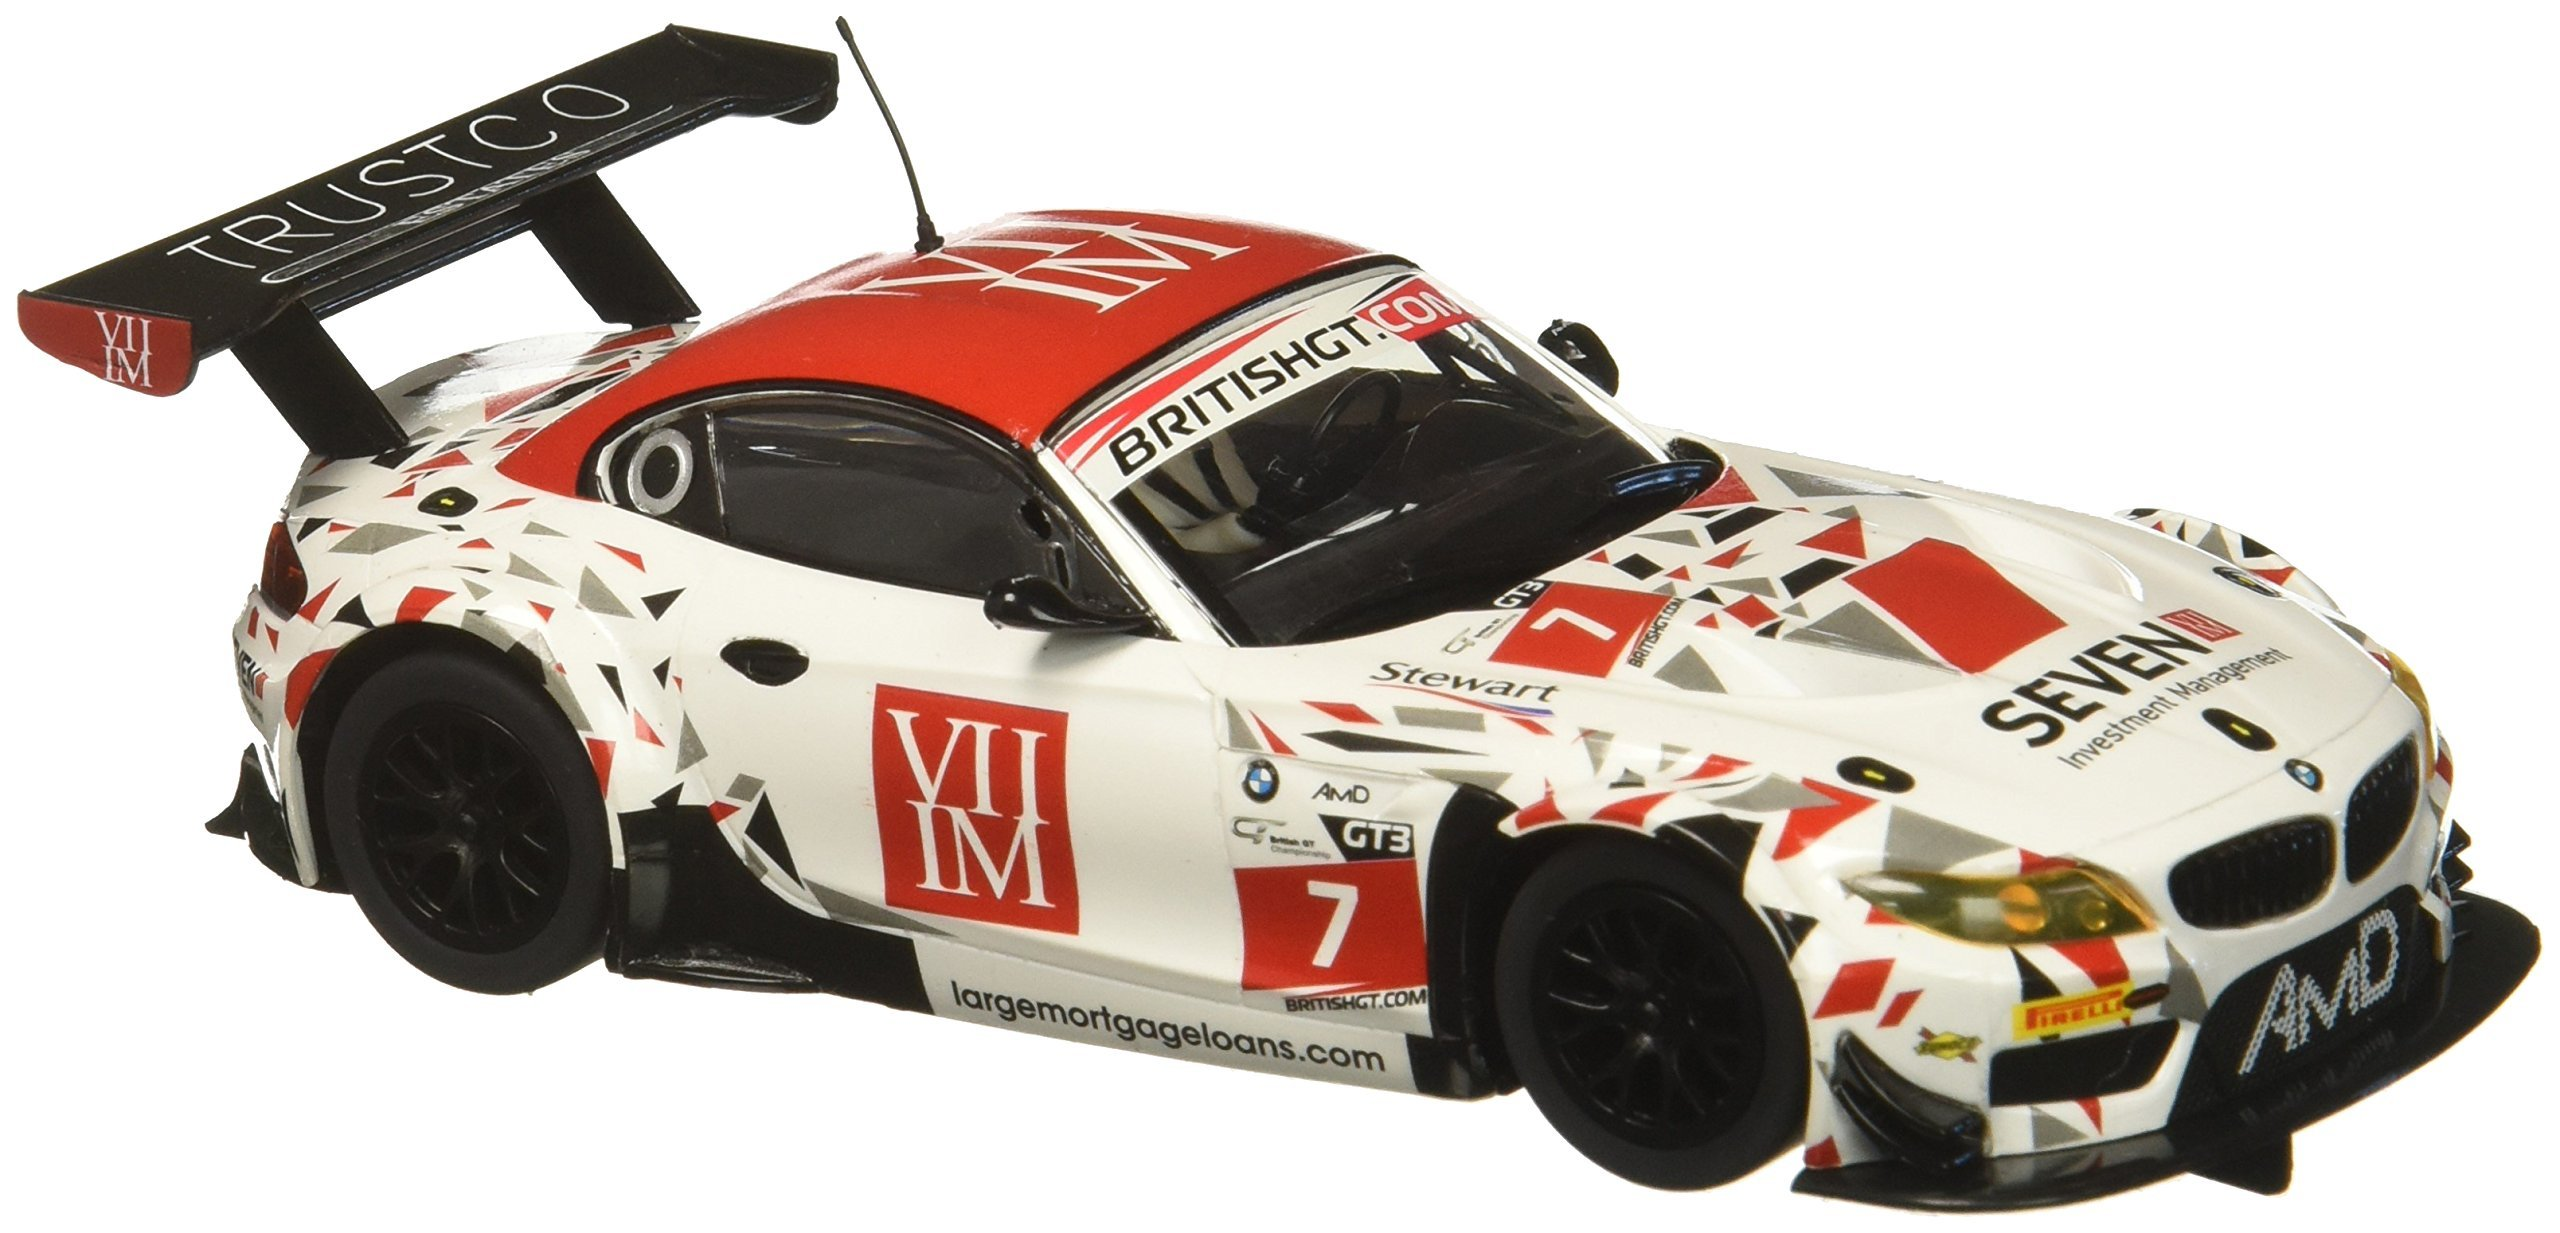 Scalextric BMW Z4 Gt3 AMD Tuning #7 1: 32 Slot Car C3848 Vehicle Replicas